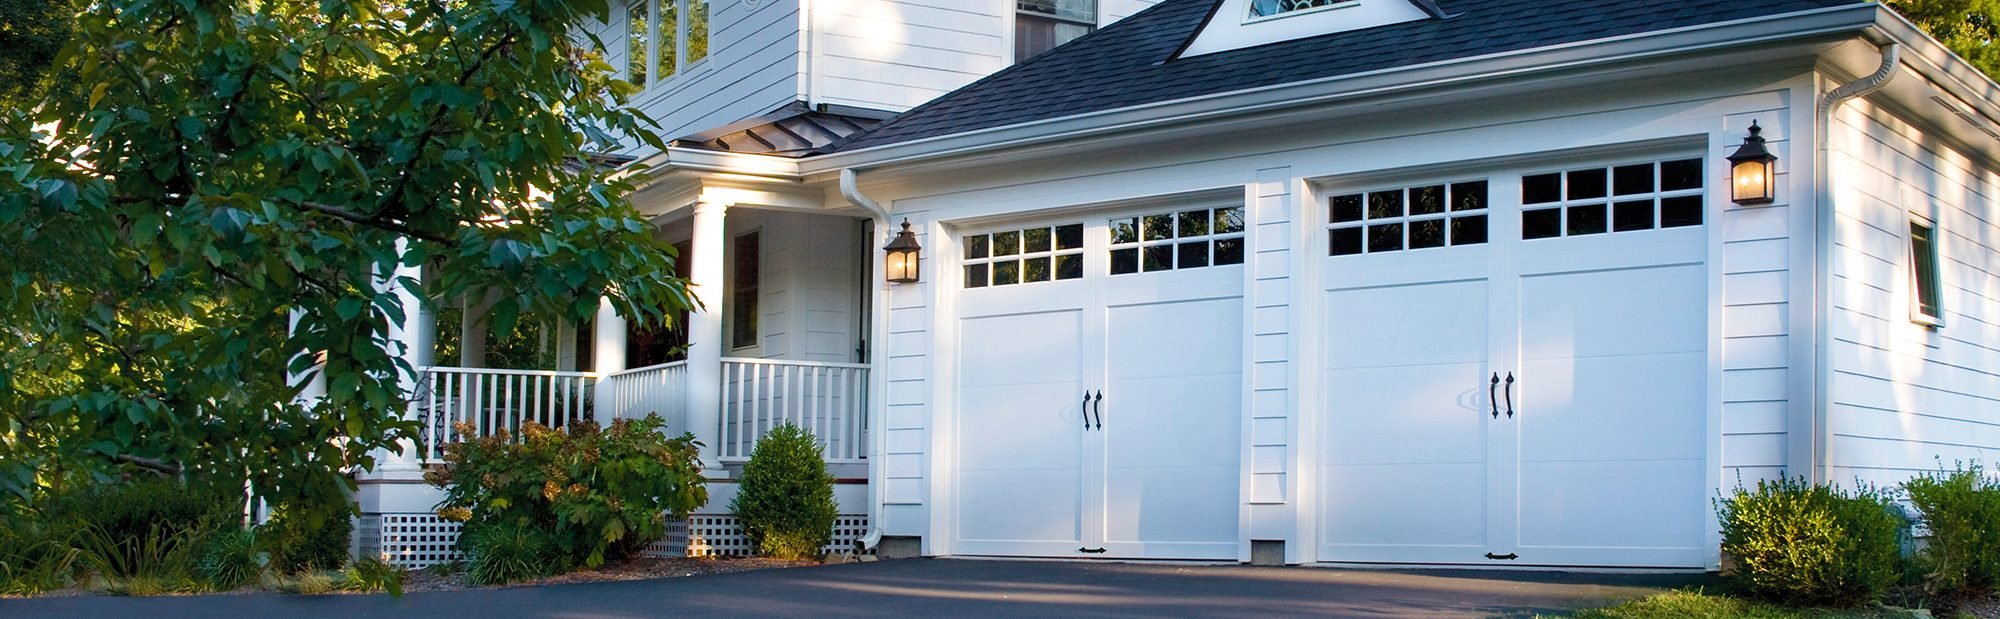 Distribudoors garage door service greater seattle area visualize the possibilities rubansaba